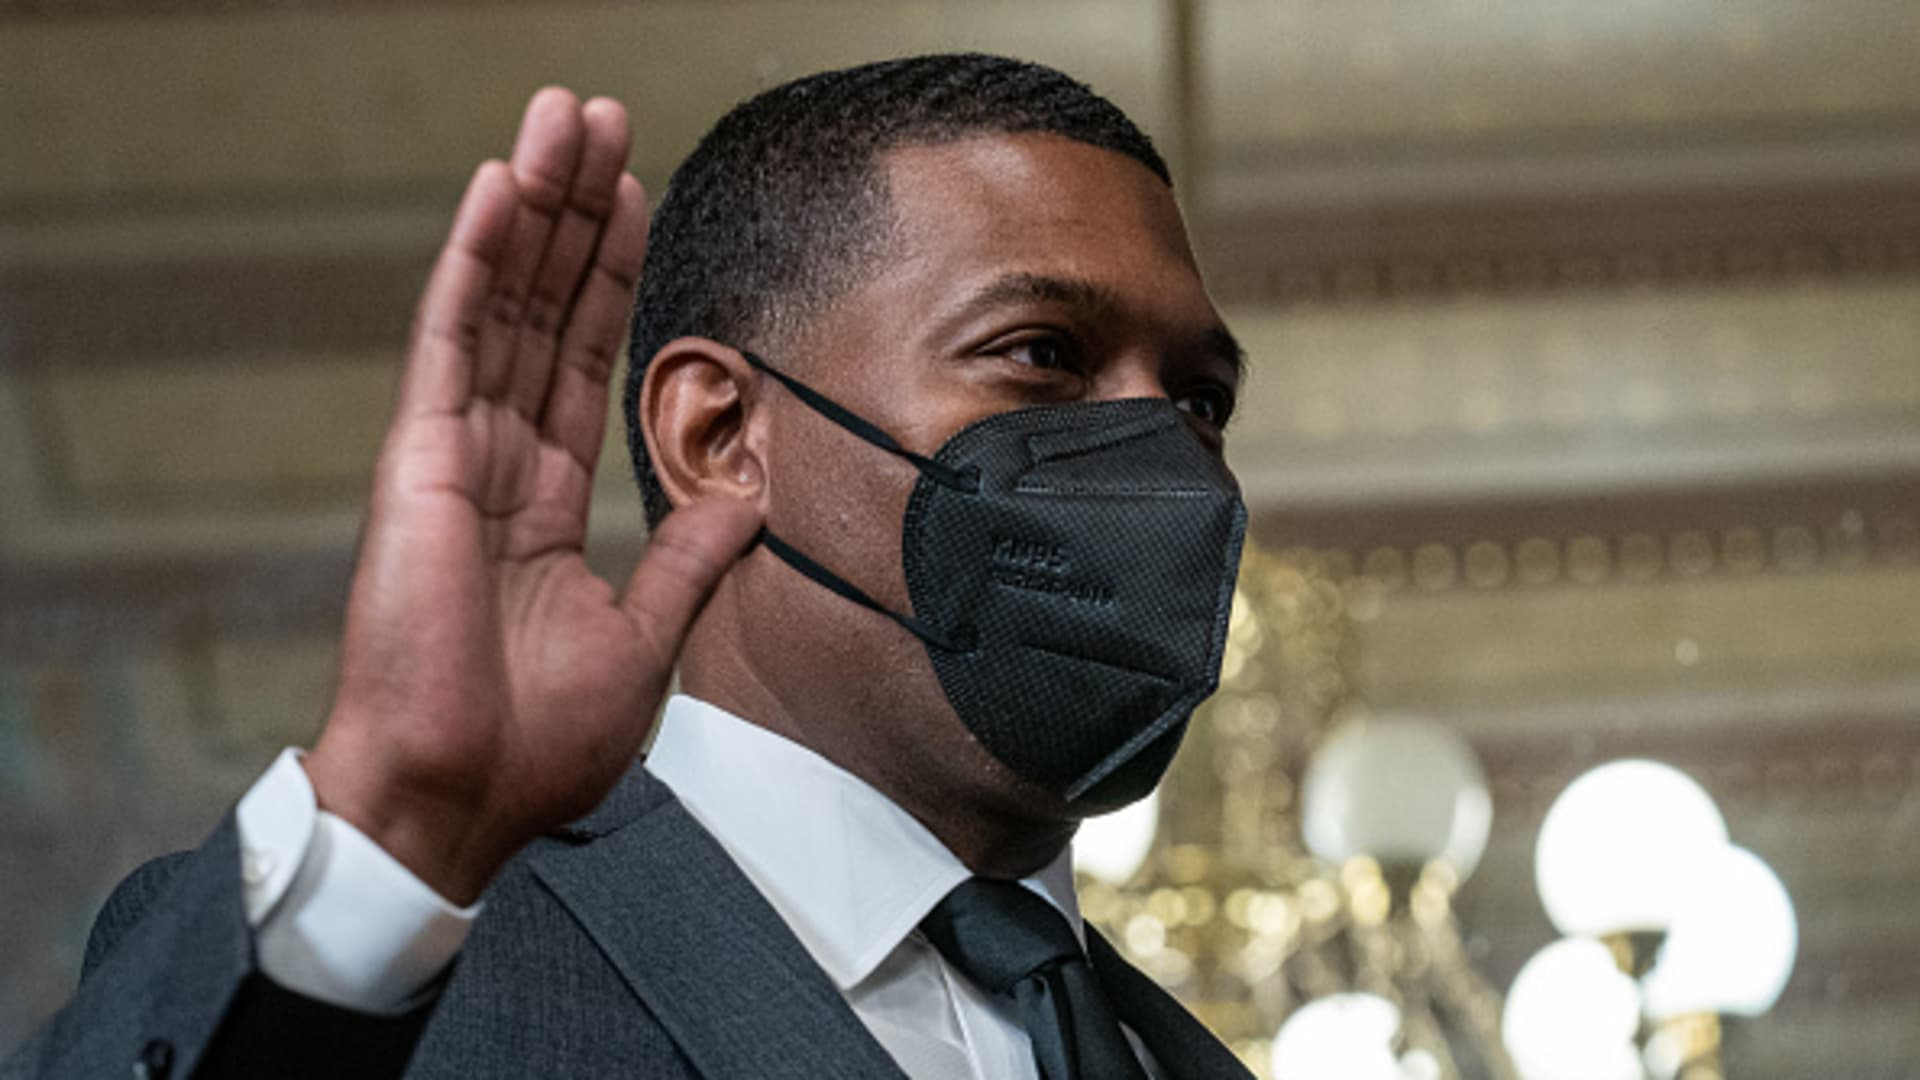 Michael Regan, administrator of the Environmental Protection Agency (EPA), wears a protective mask while being sworn in during a ceremony in Washington, D.C., on Wednesday, March 17, 2021.